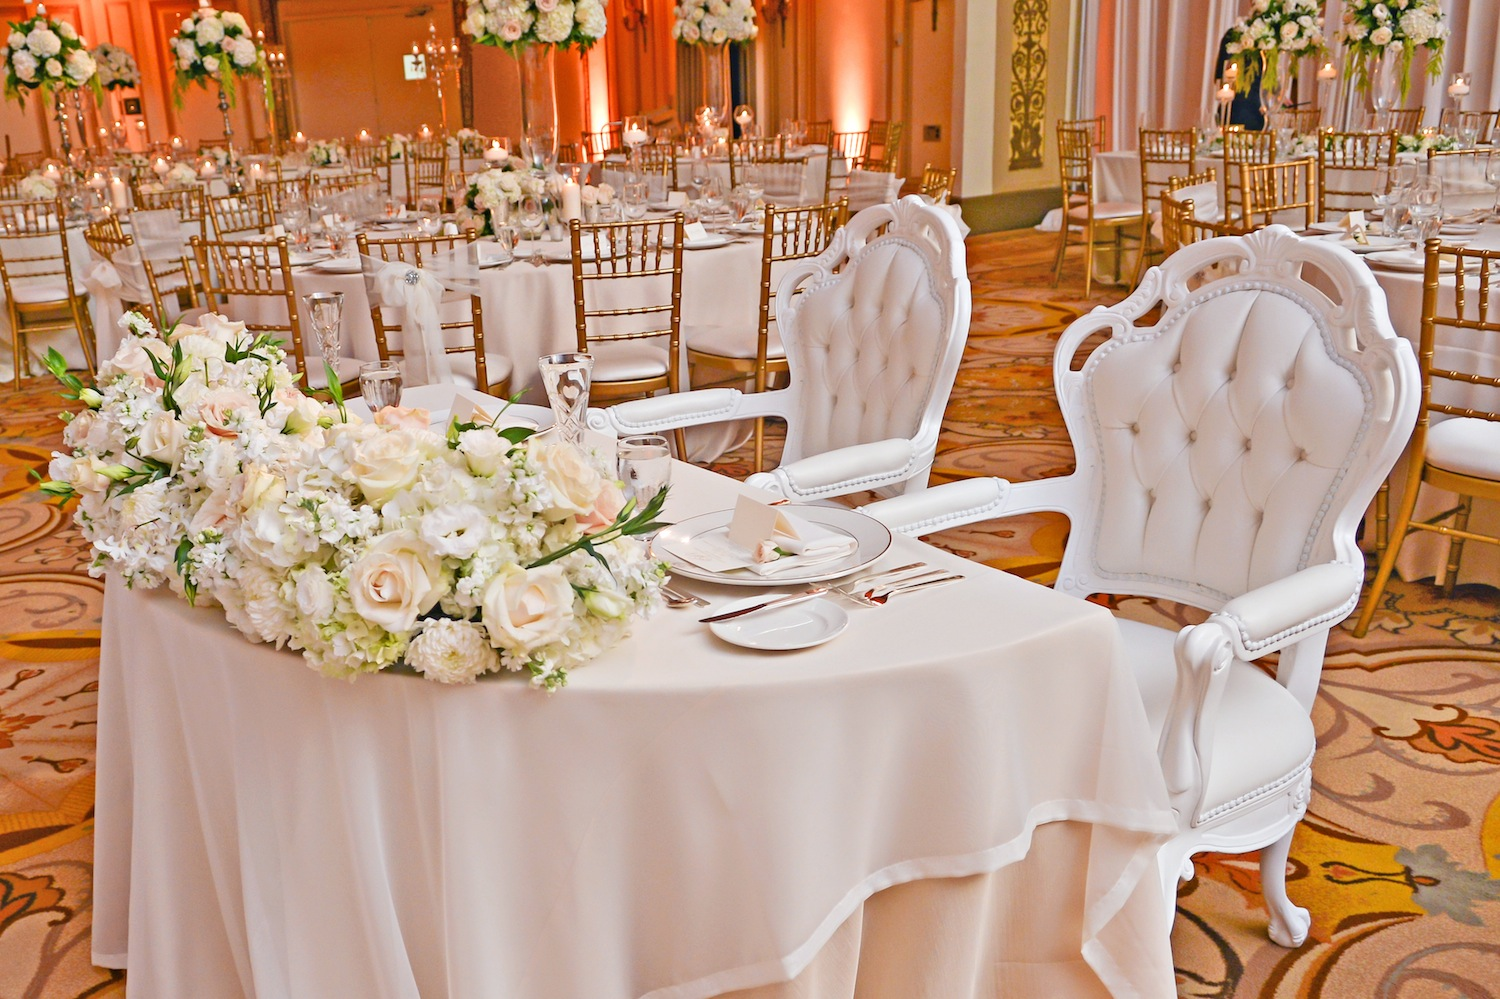 places to rent tables and chairs dental chair accessories tufted furniture rentals give your wedding a glam look